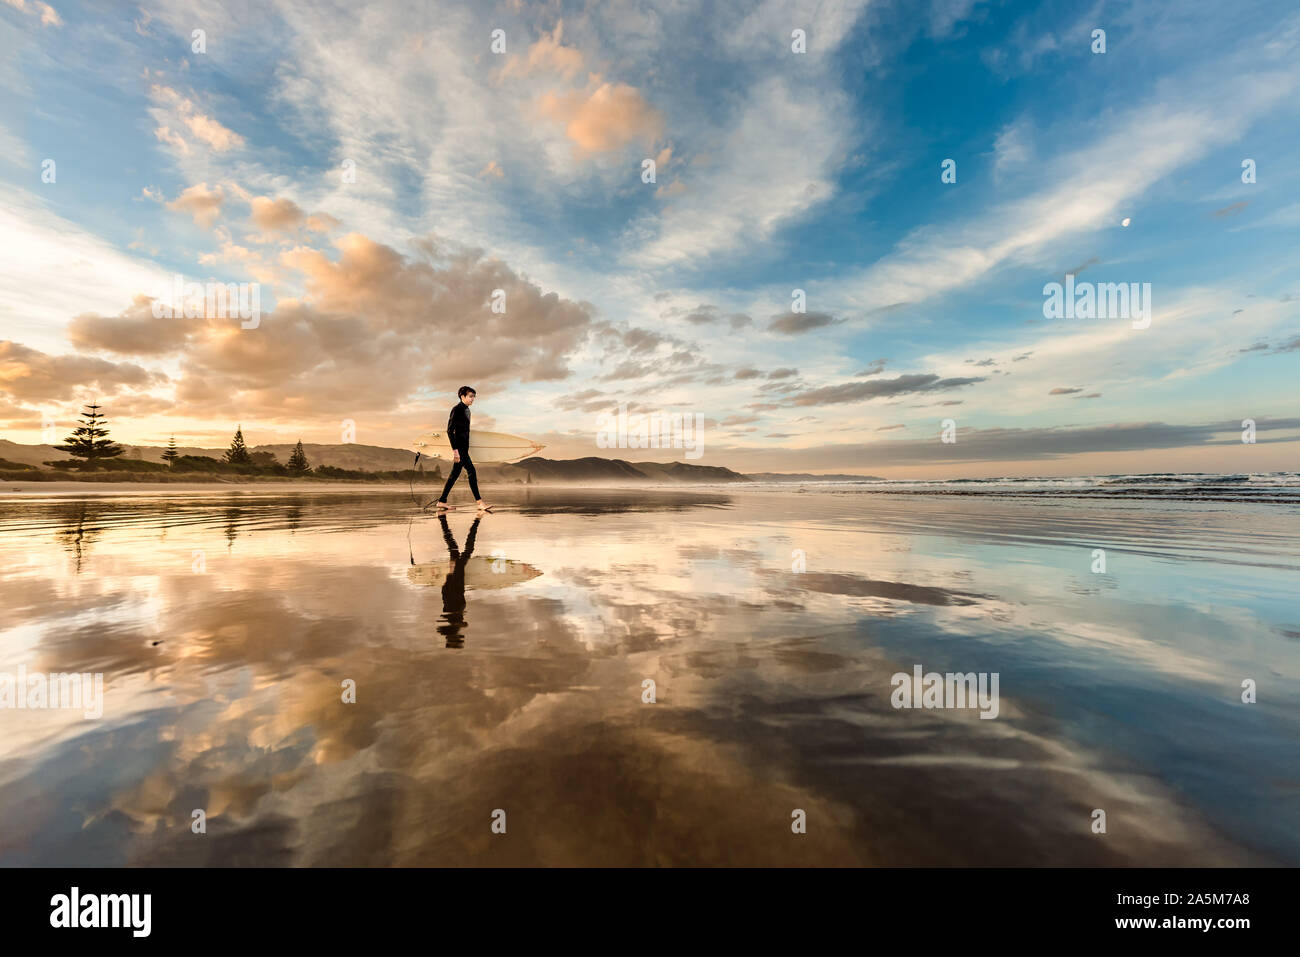 Teen with surfboard on a beach in New Zealand at sunset Stock Photo